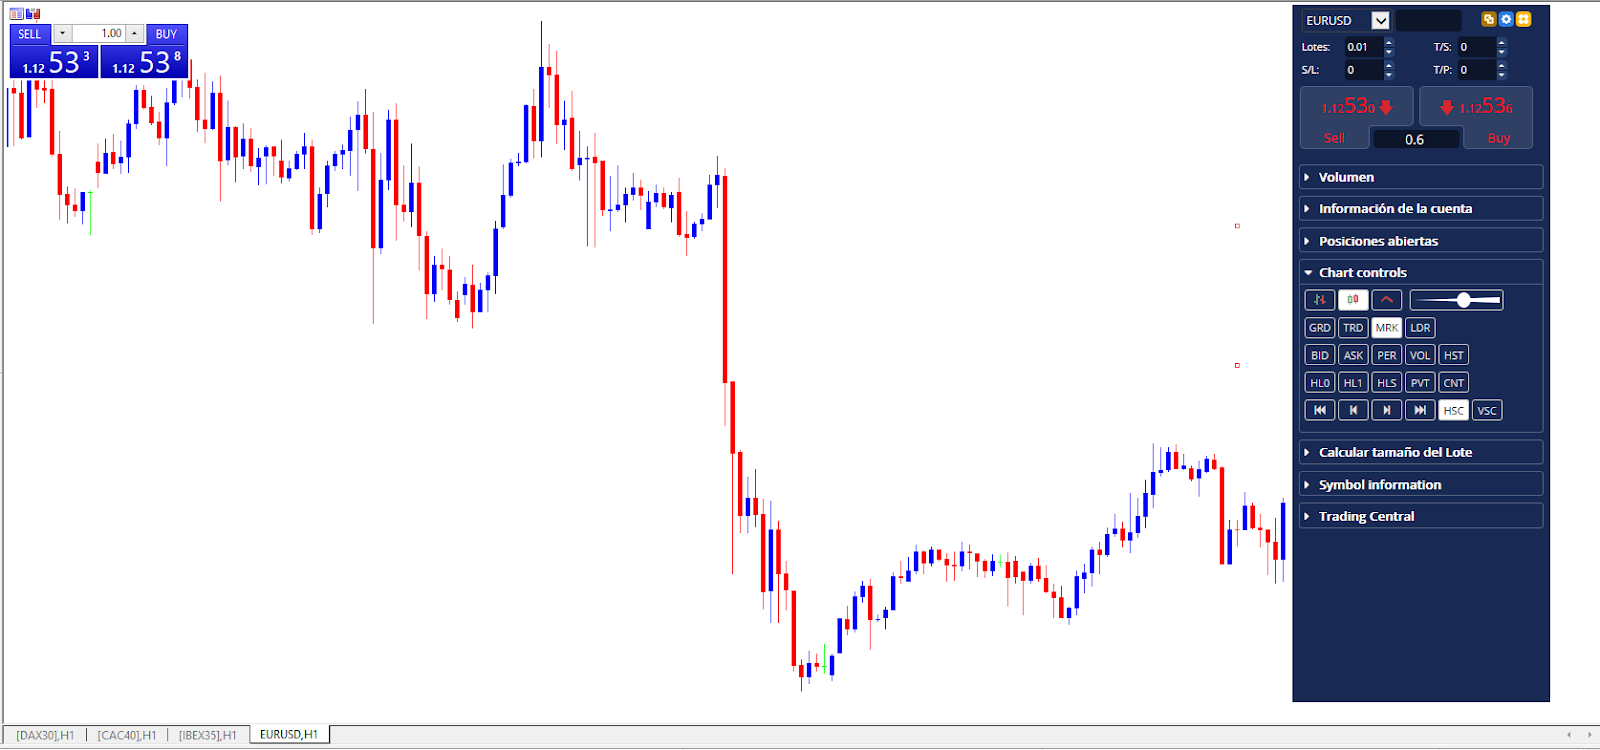 intraday trading euro